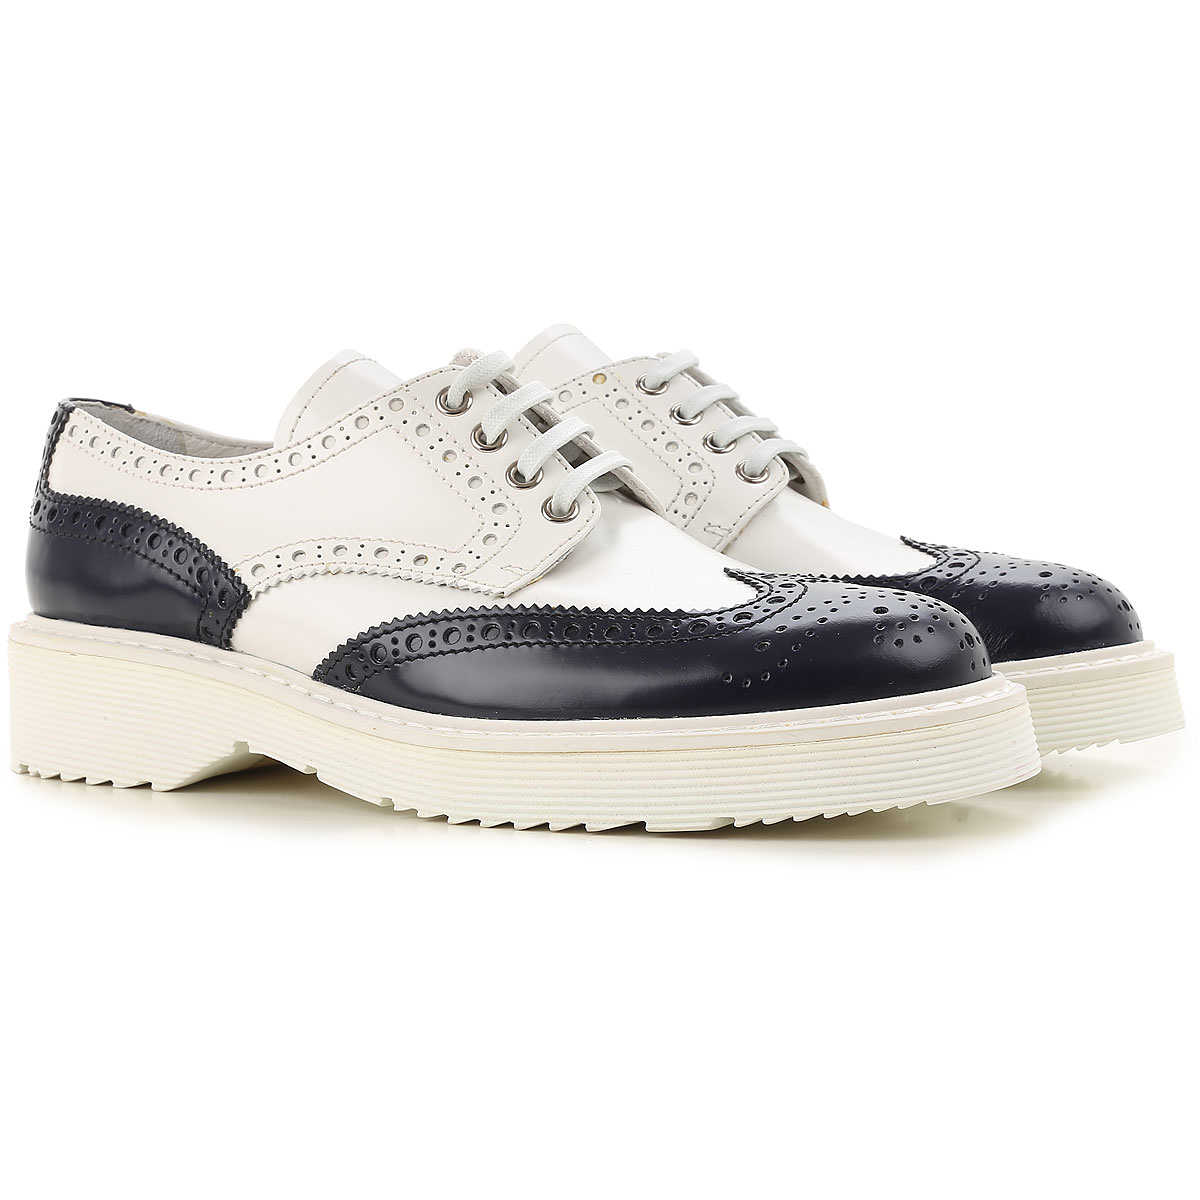 Prada Brogues Oxford Shoes On Sale in Outlet Baltic Blue DK - GOOFASH - Womens LEATHER SHOES